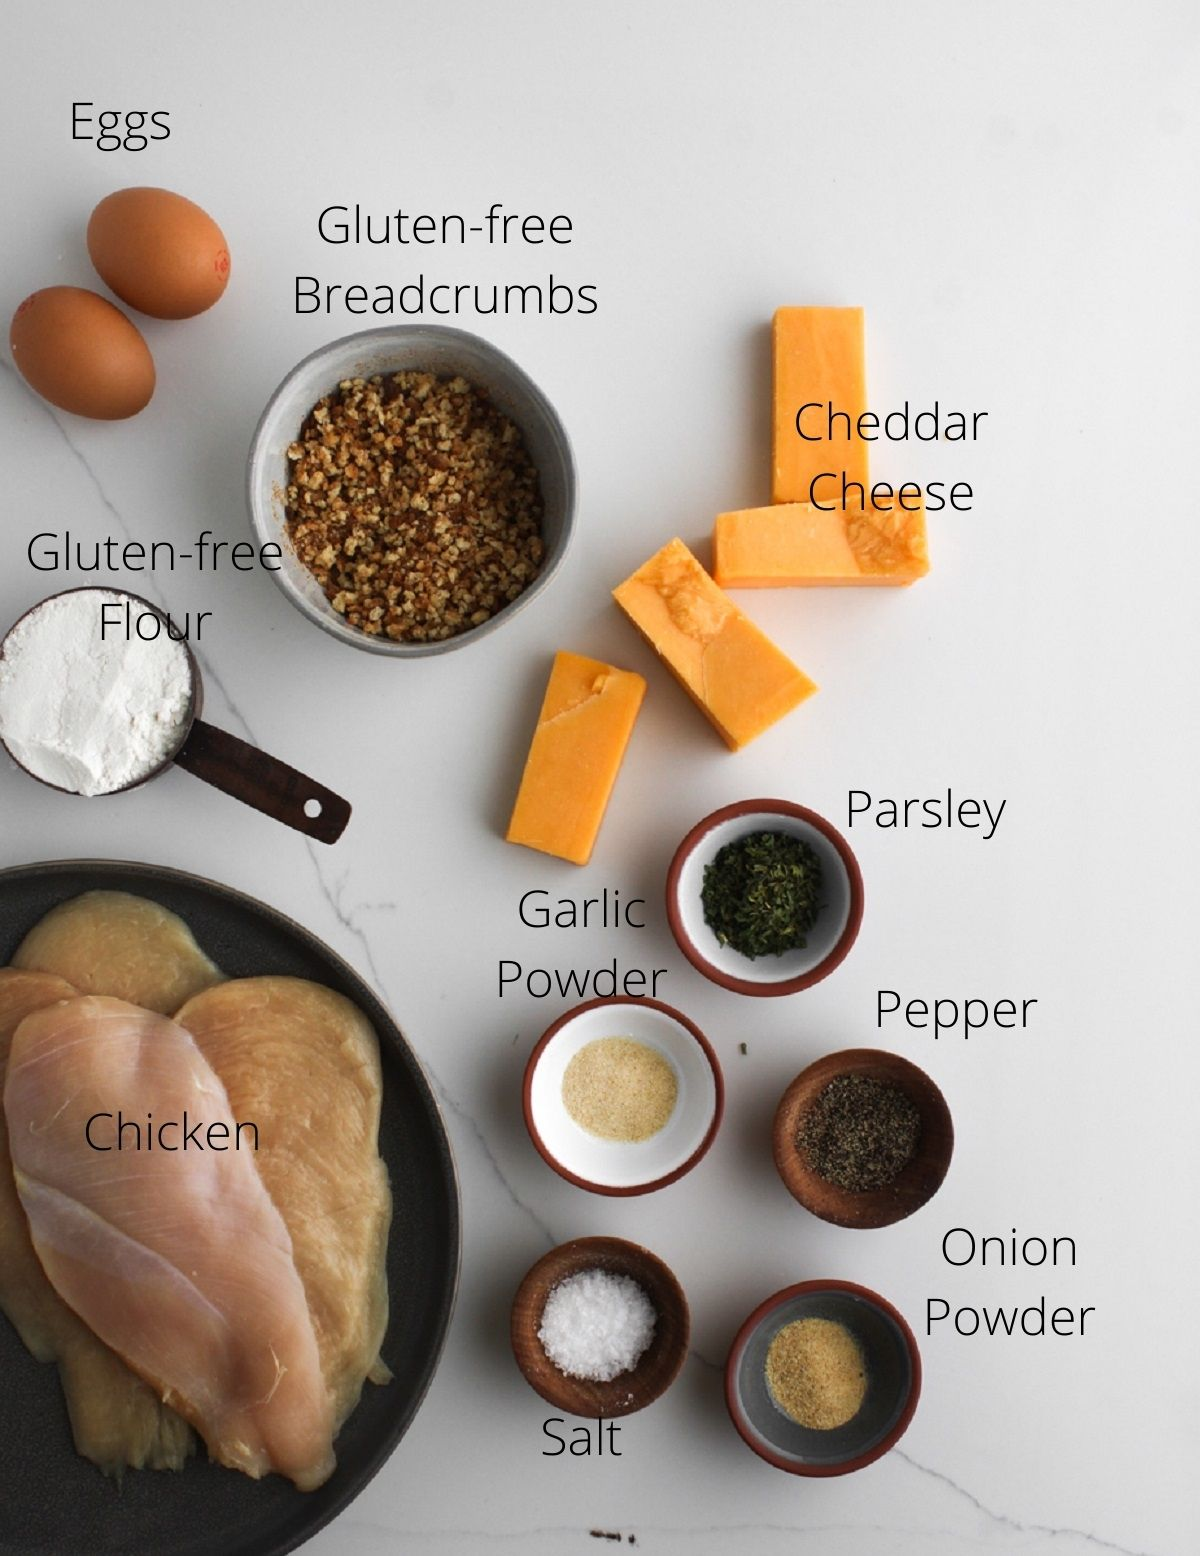 Crispy cheddar chicken ingredients laid out.